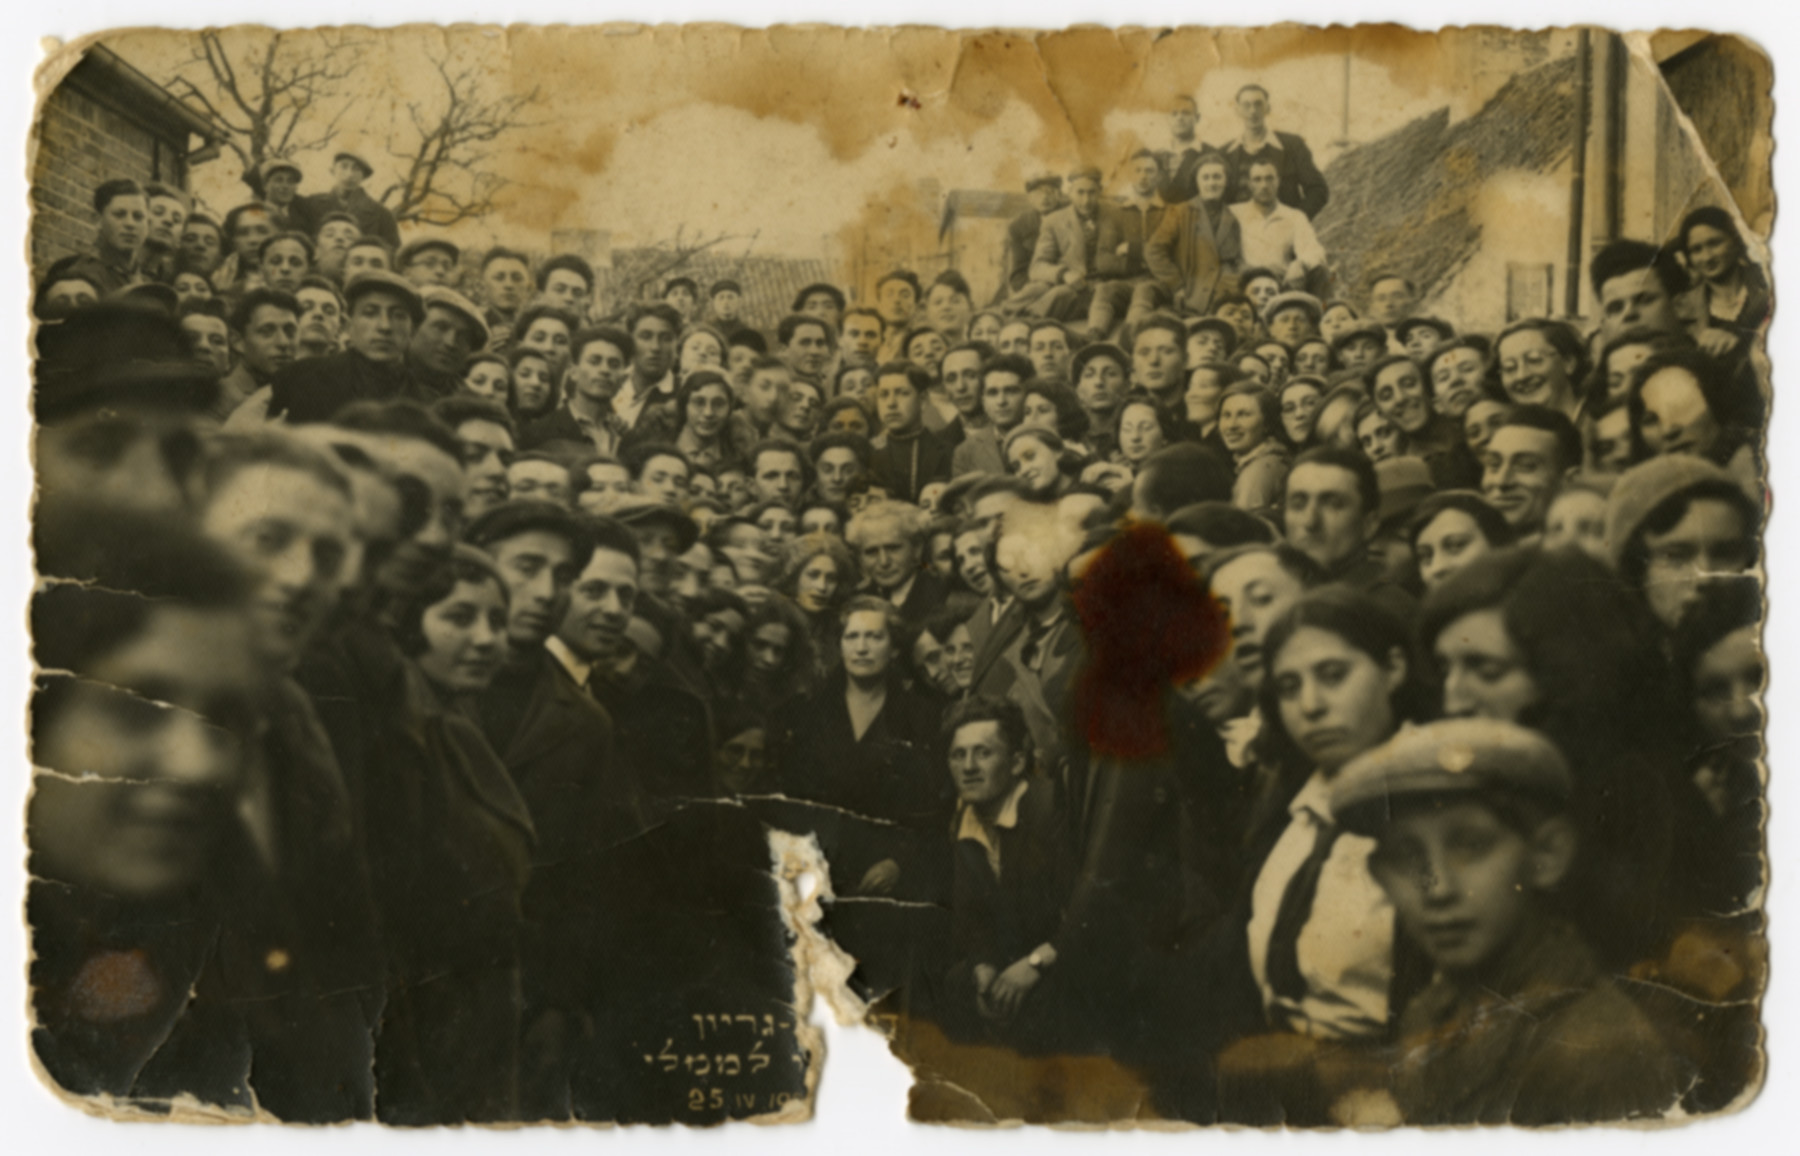 David Ben-Gurion visits Memel and is greeted by a large crowd.  Anna Chason is pictured in front of Ben-Gurion.